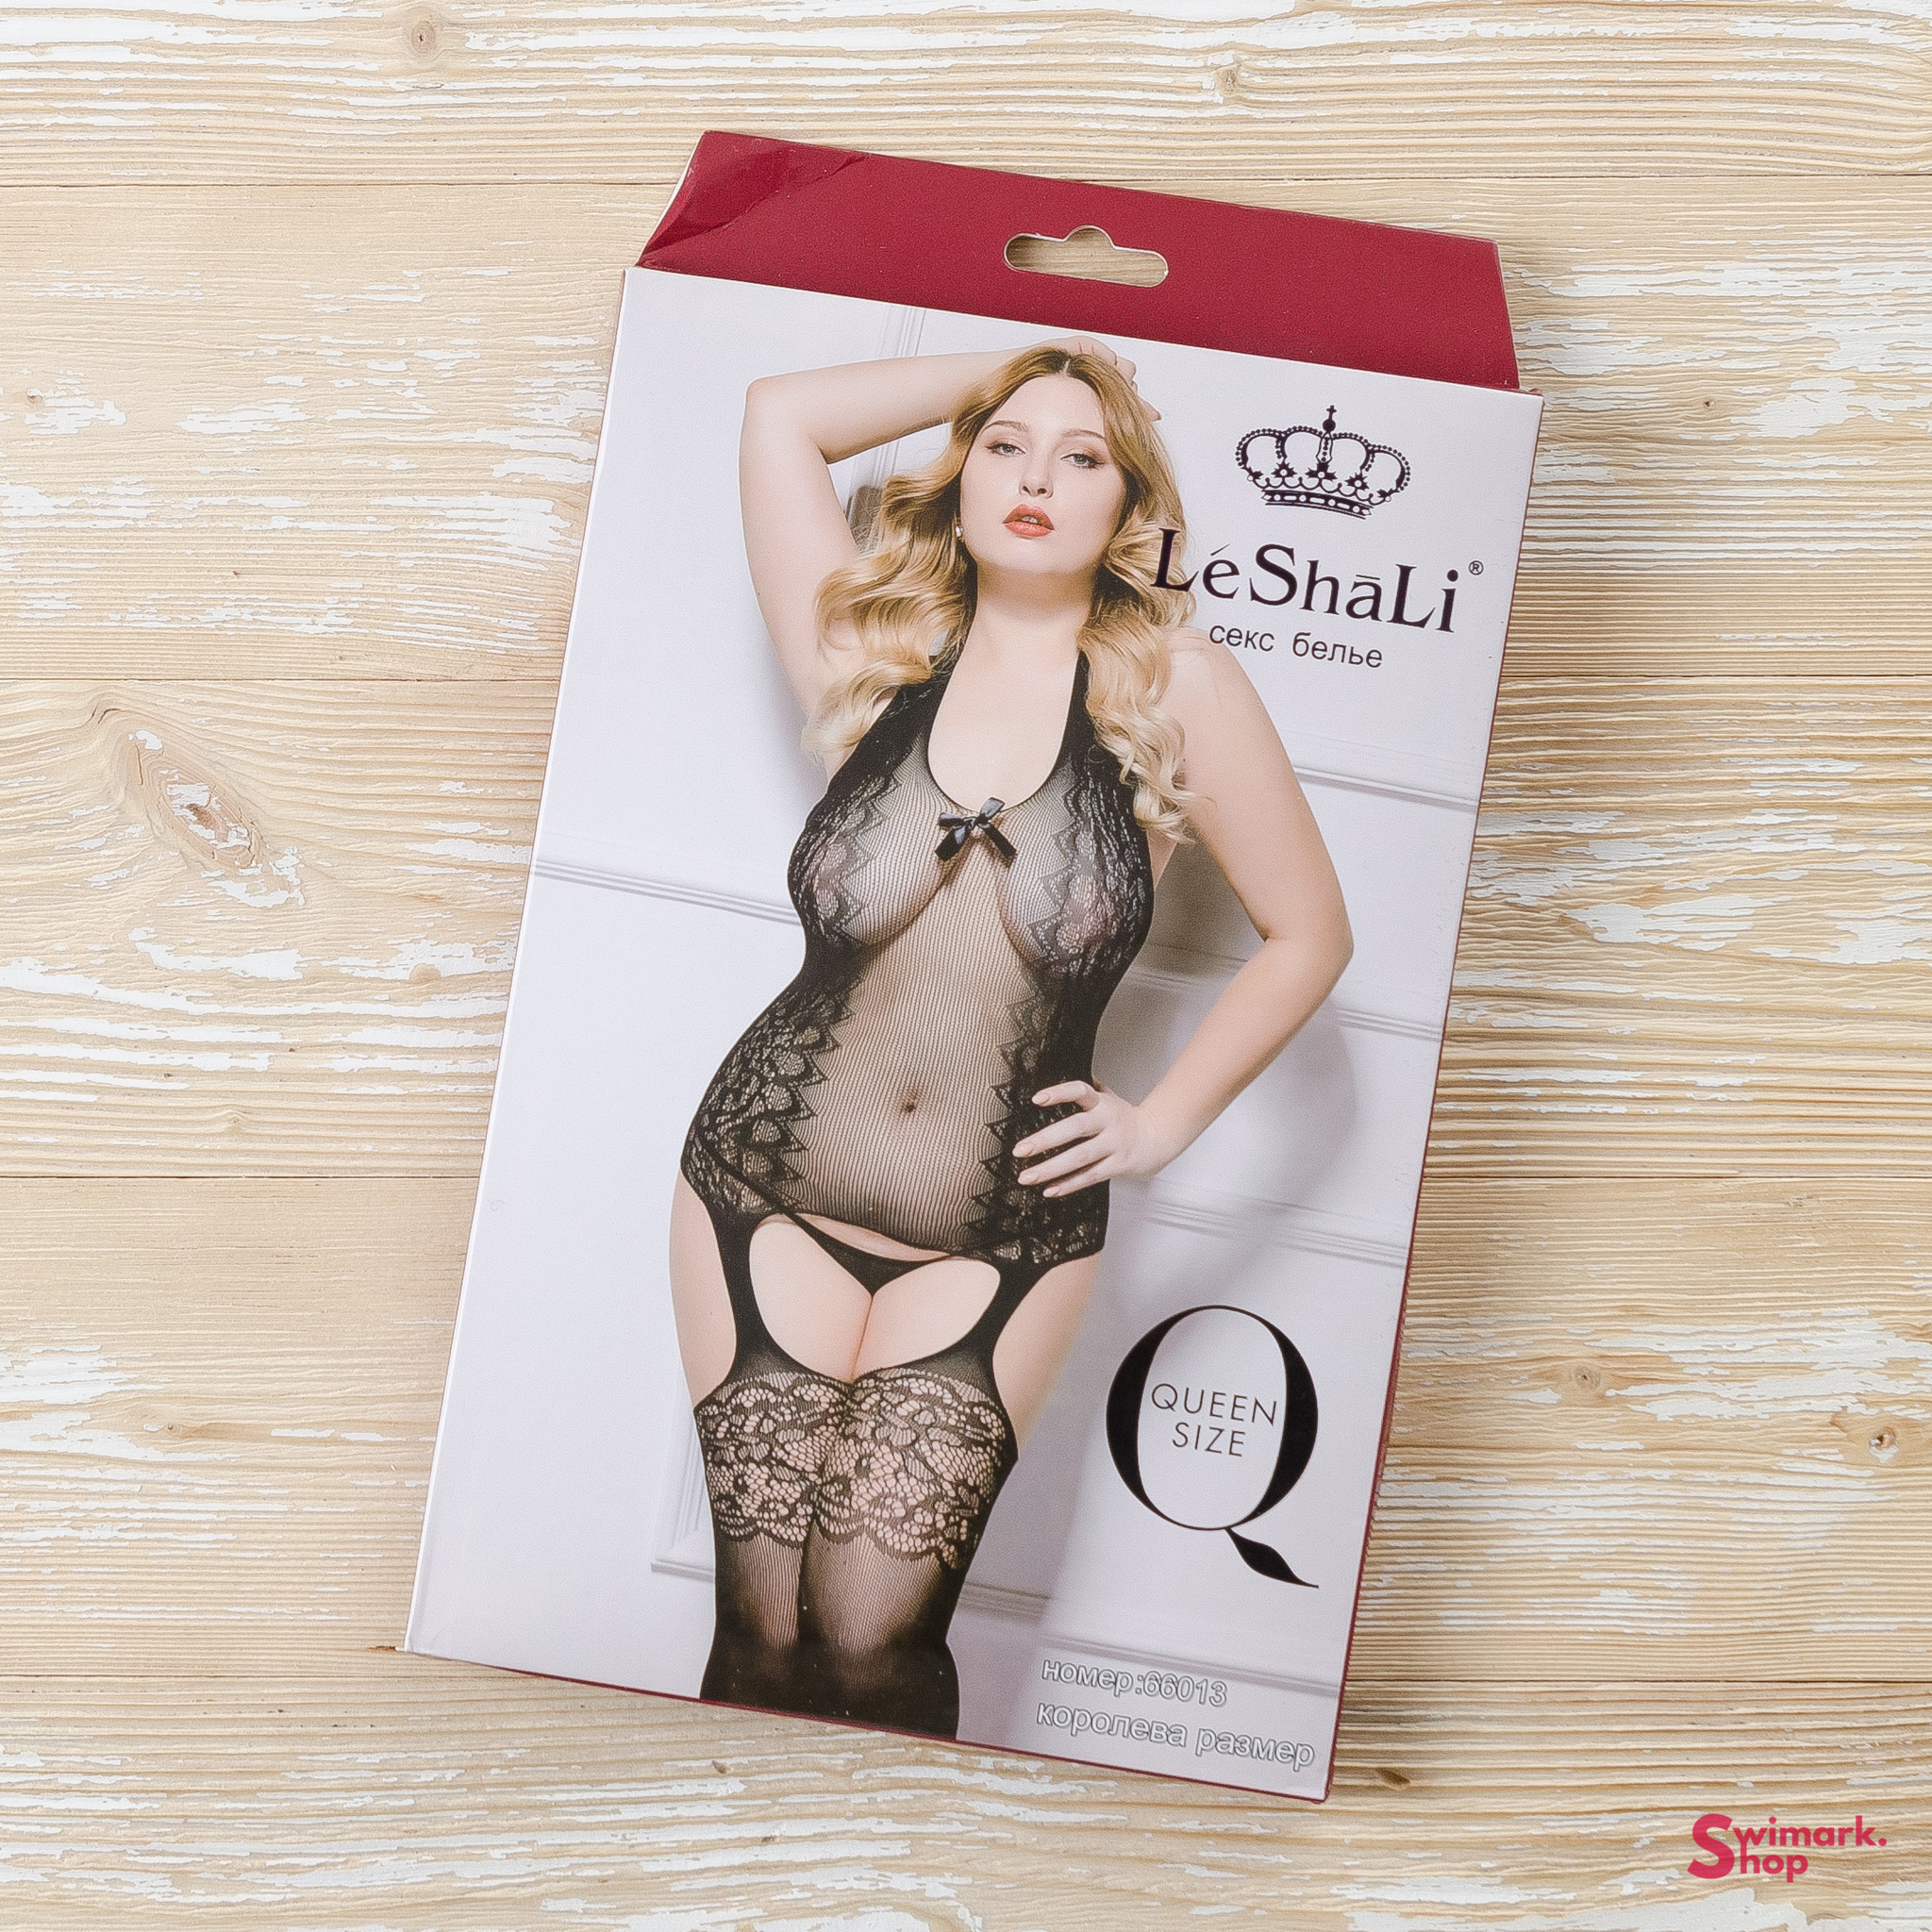 Le Shali Эротическая боди-сетка LE SHALI 66013 Queen Size swimarkshop-6235-2.jpg